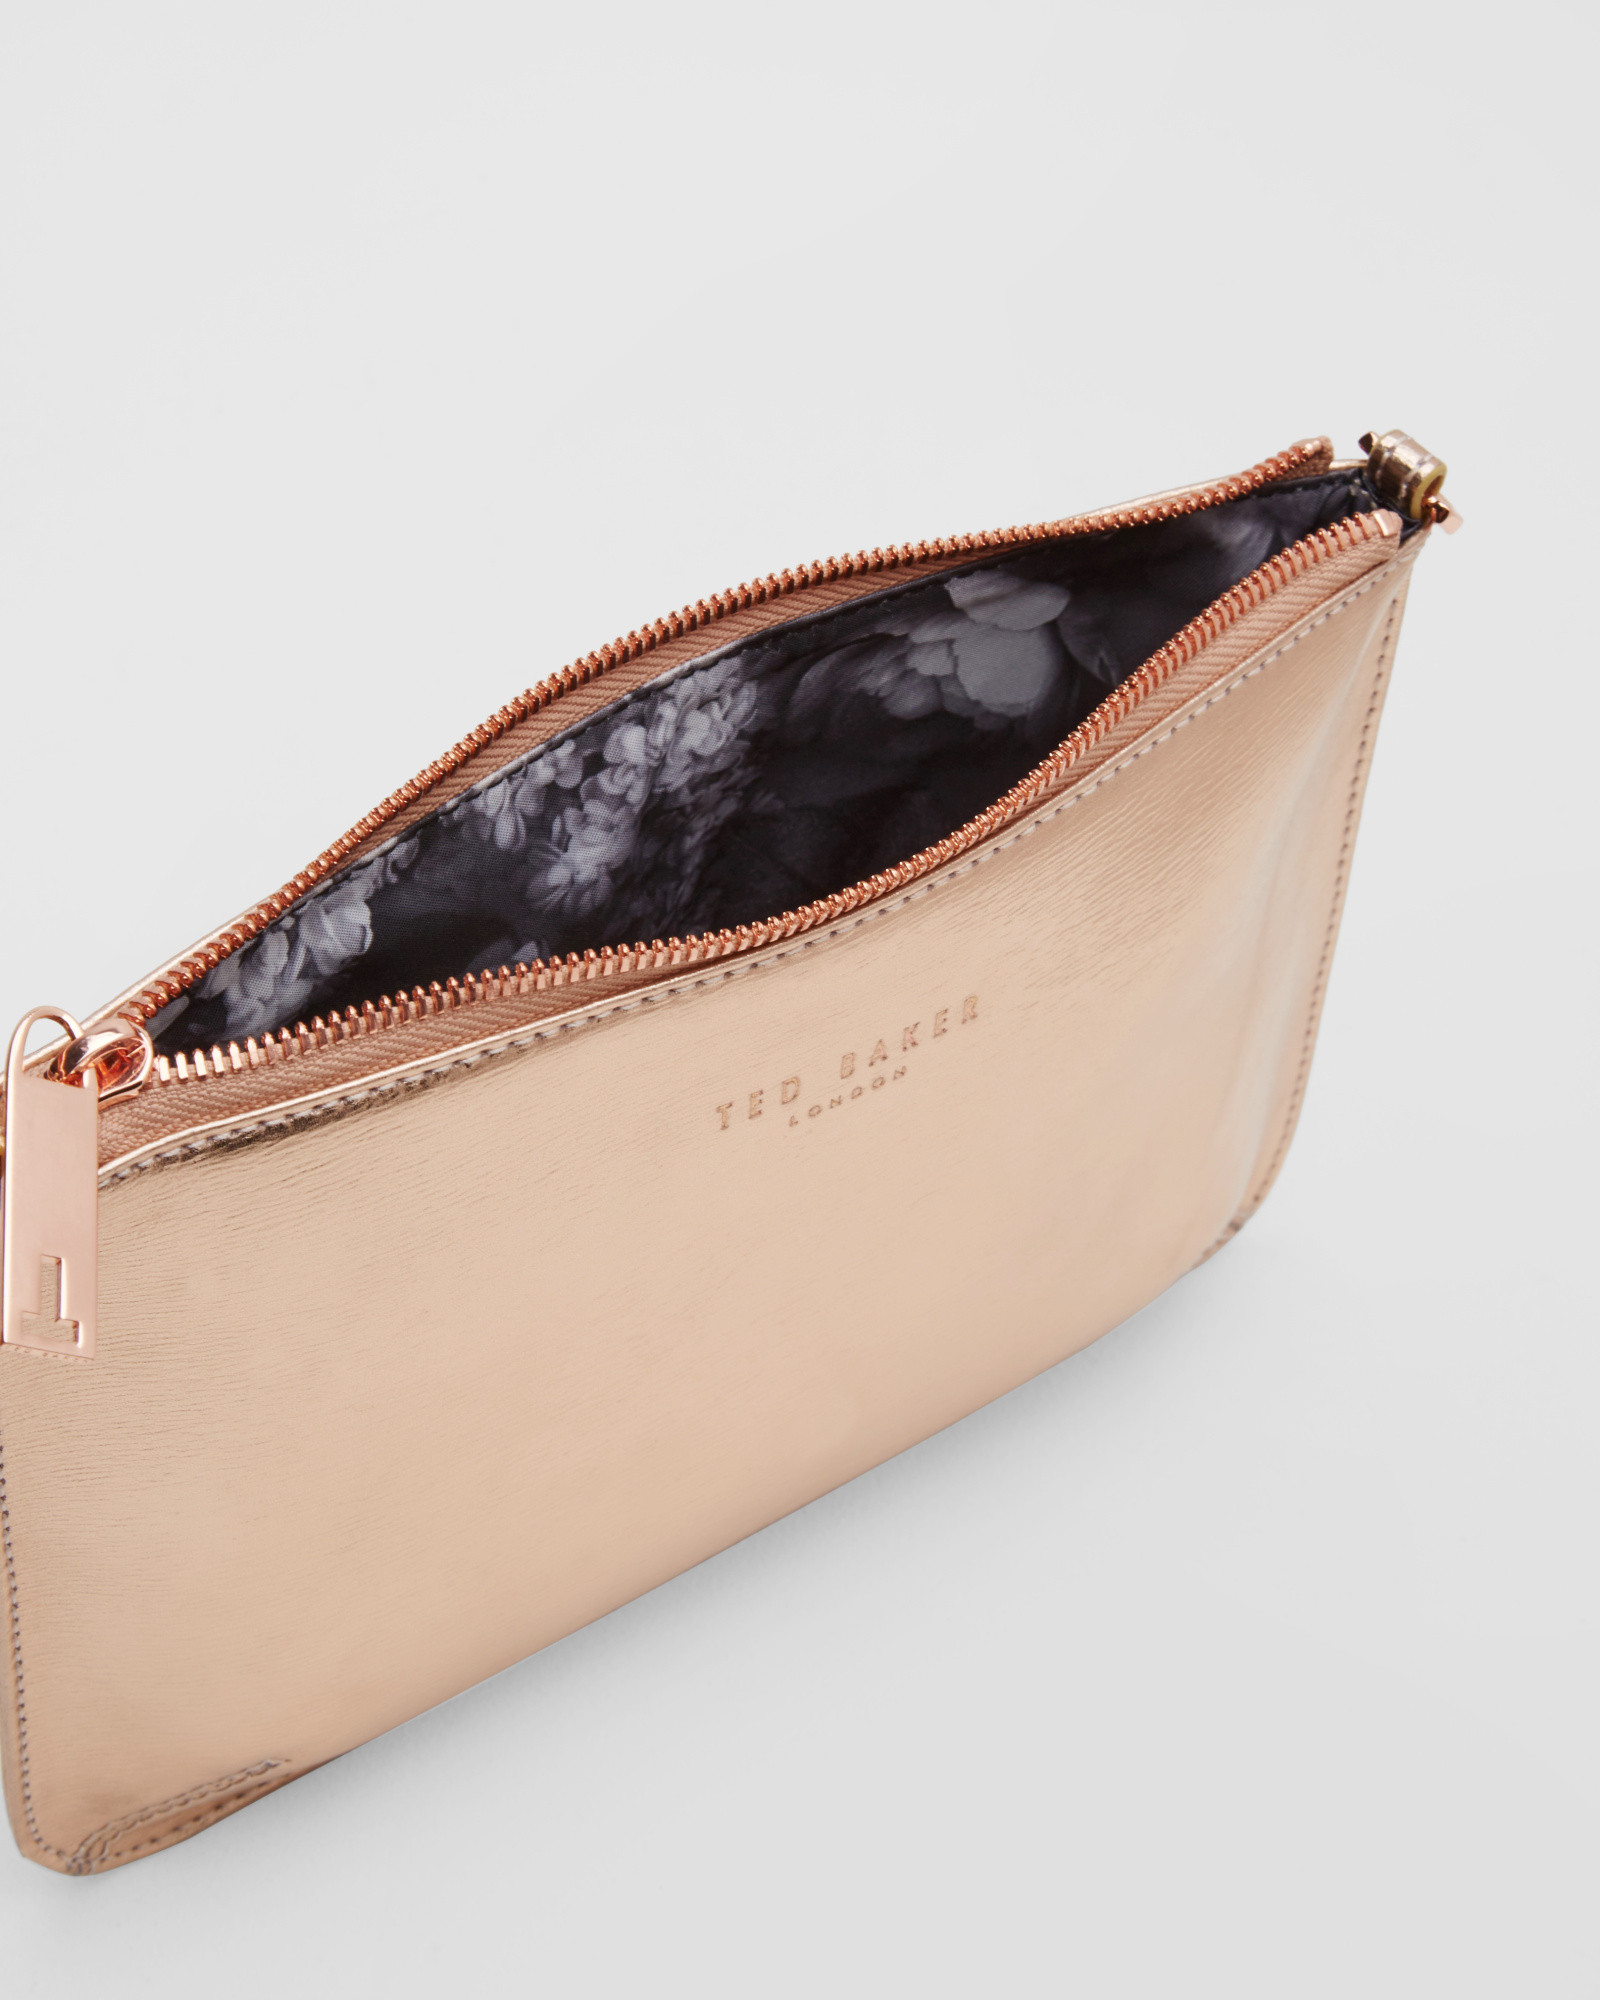 ad6290ad9cce Ted Baker Crosshatch Leather Clutch Bag in Pink - Lyst